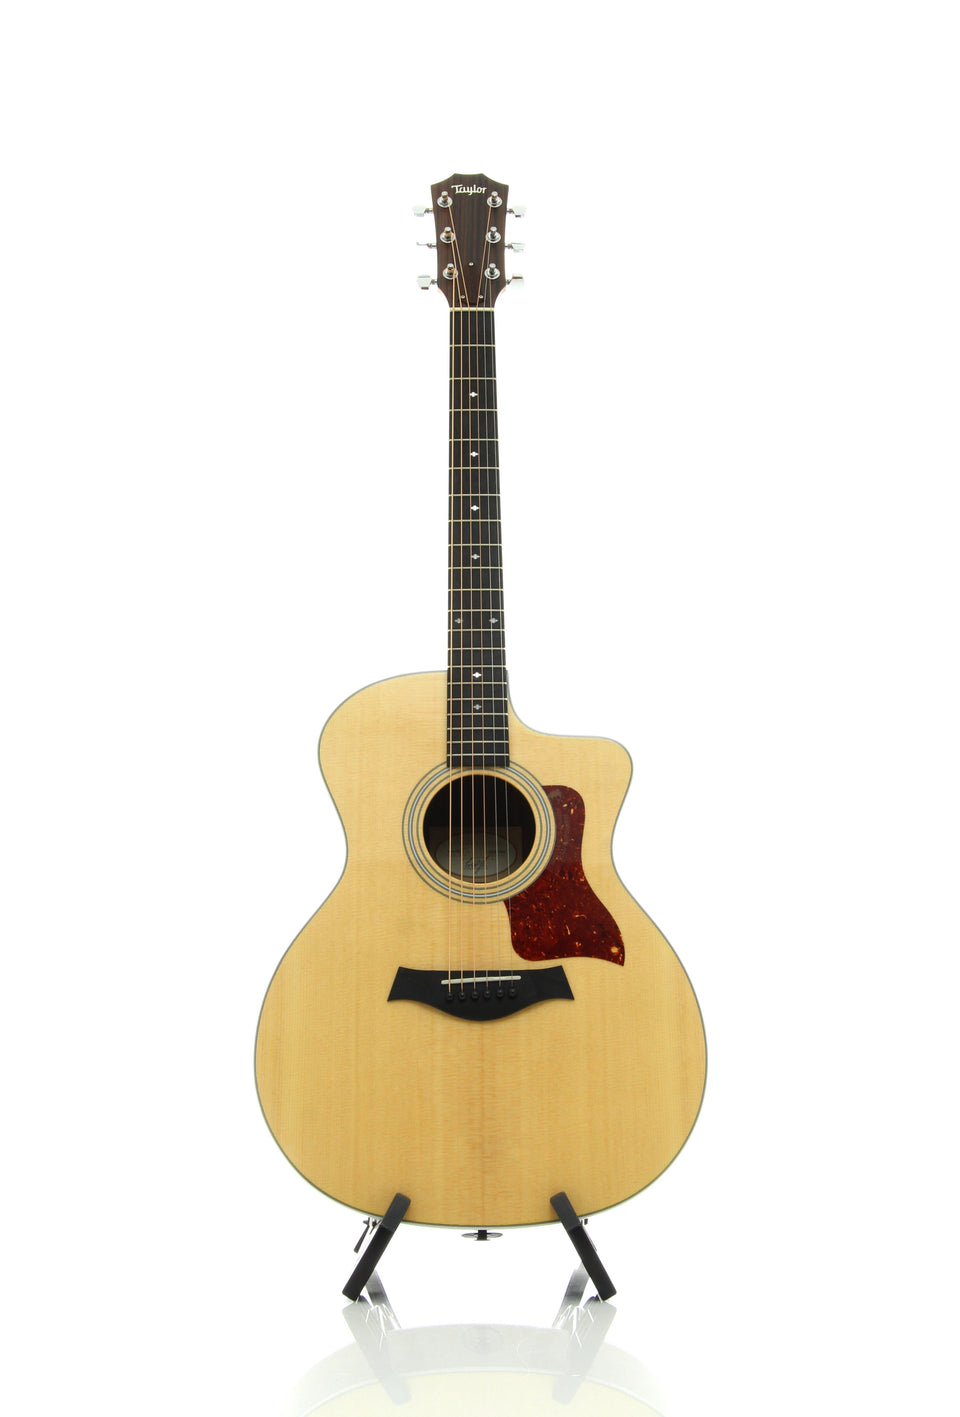 Taylor 214ce Deluxe Grand Auditorium ES2 Acoustic/Electric Guitar - Natural